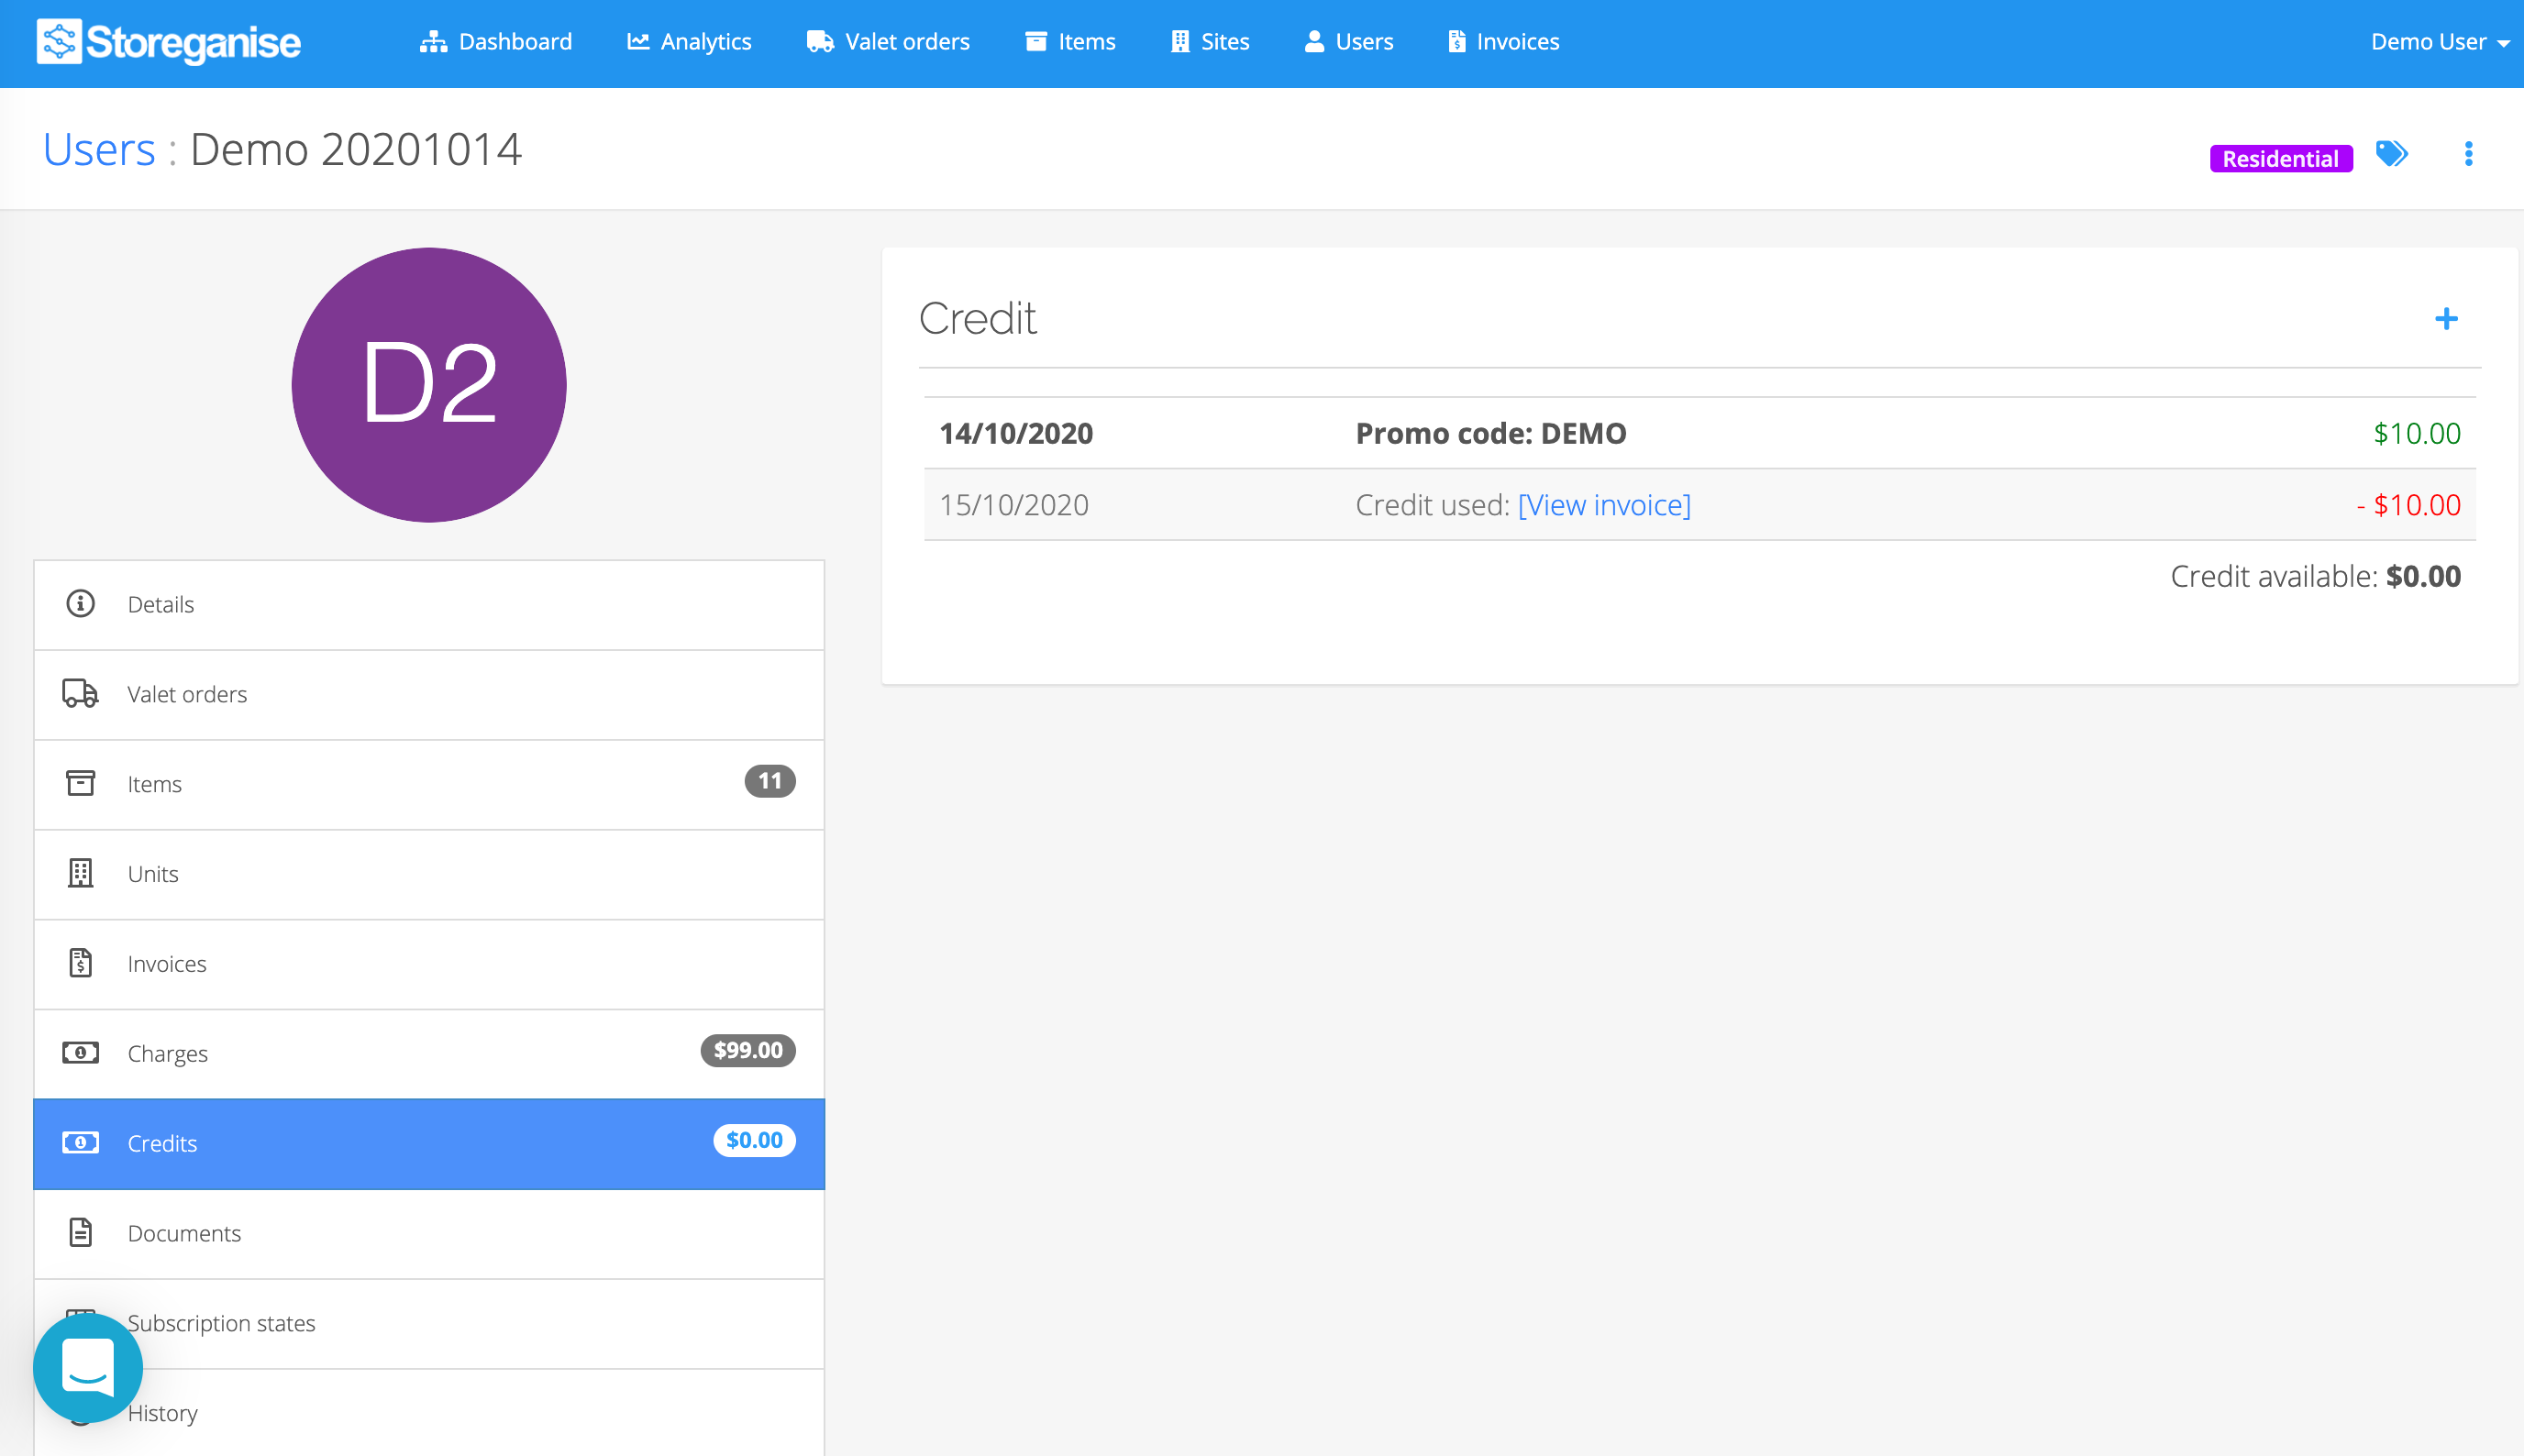 adding credit to an account